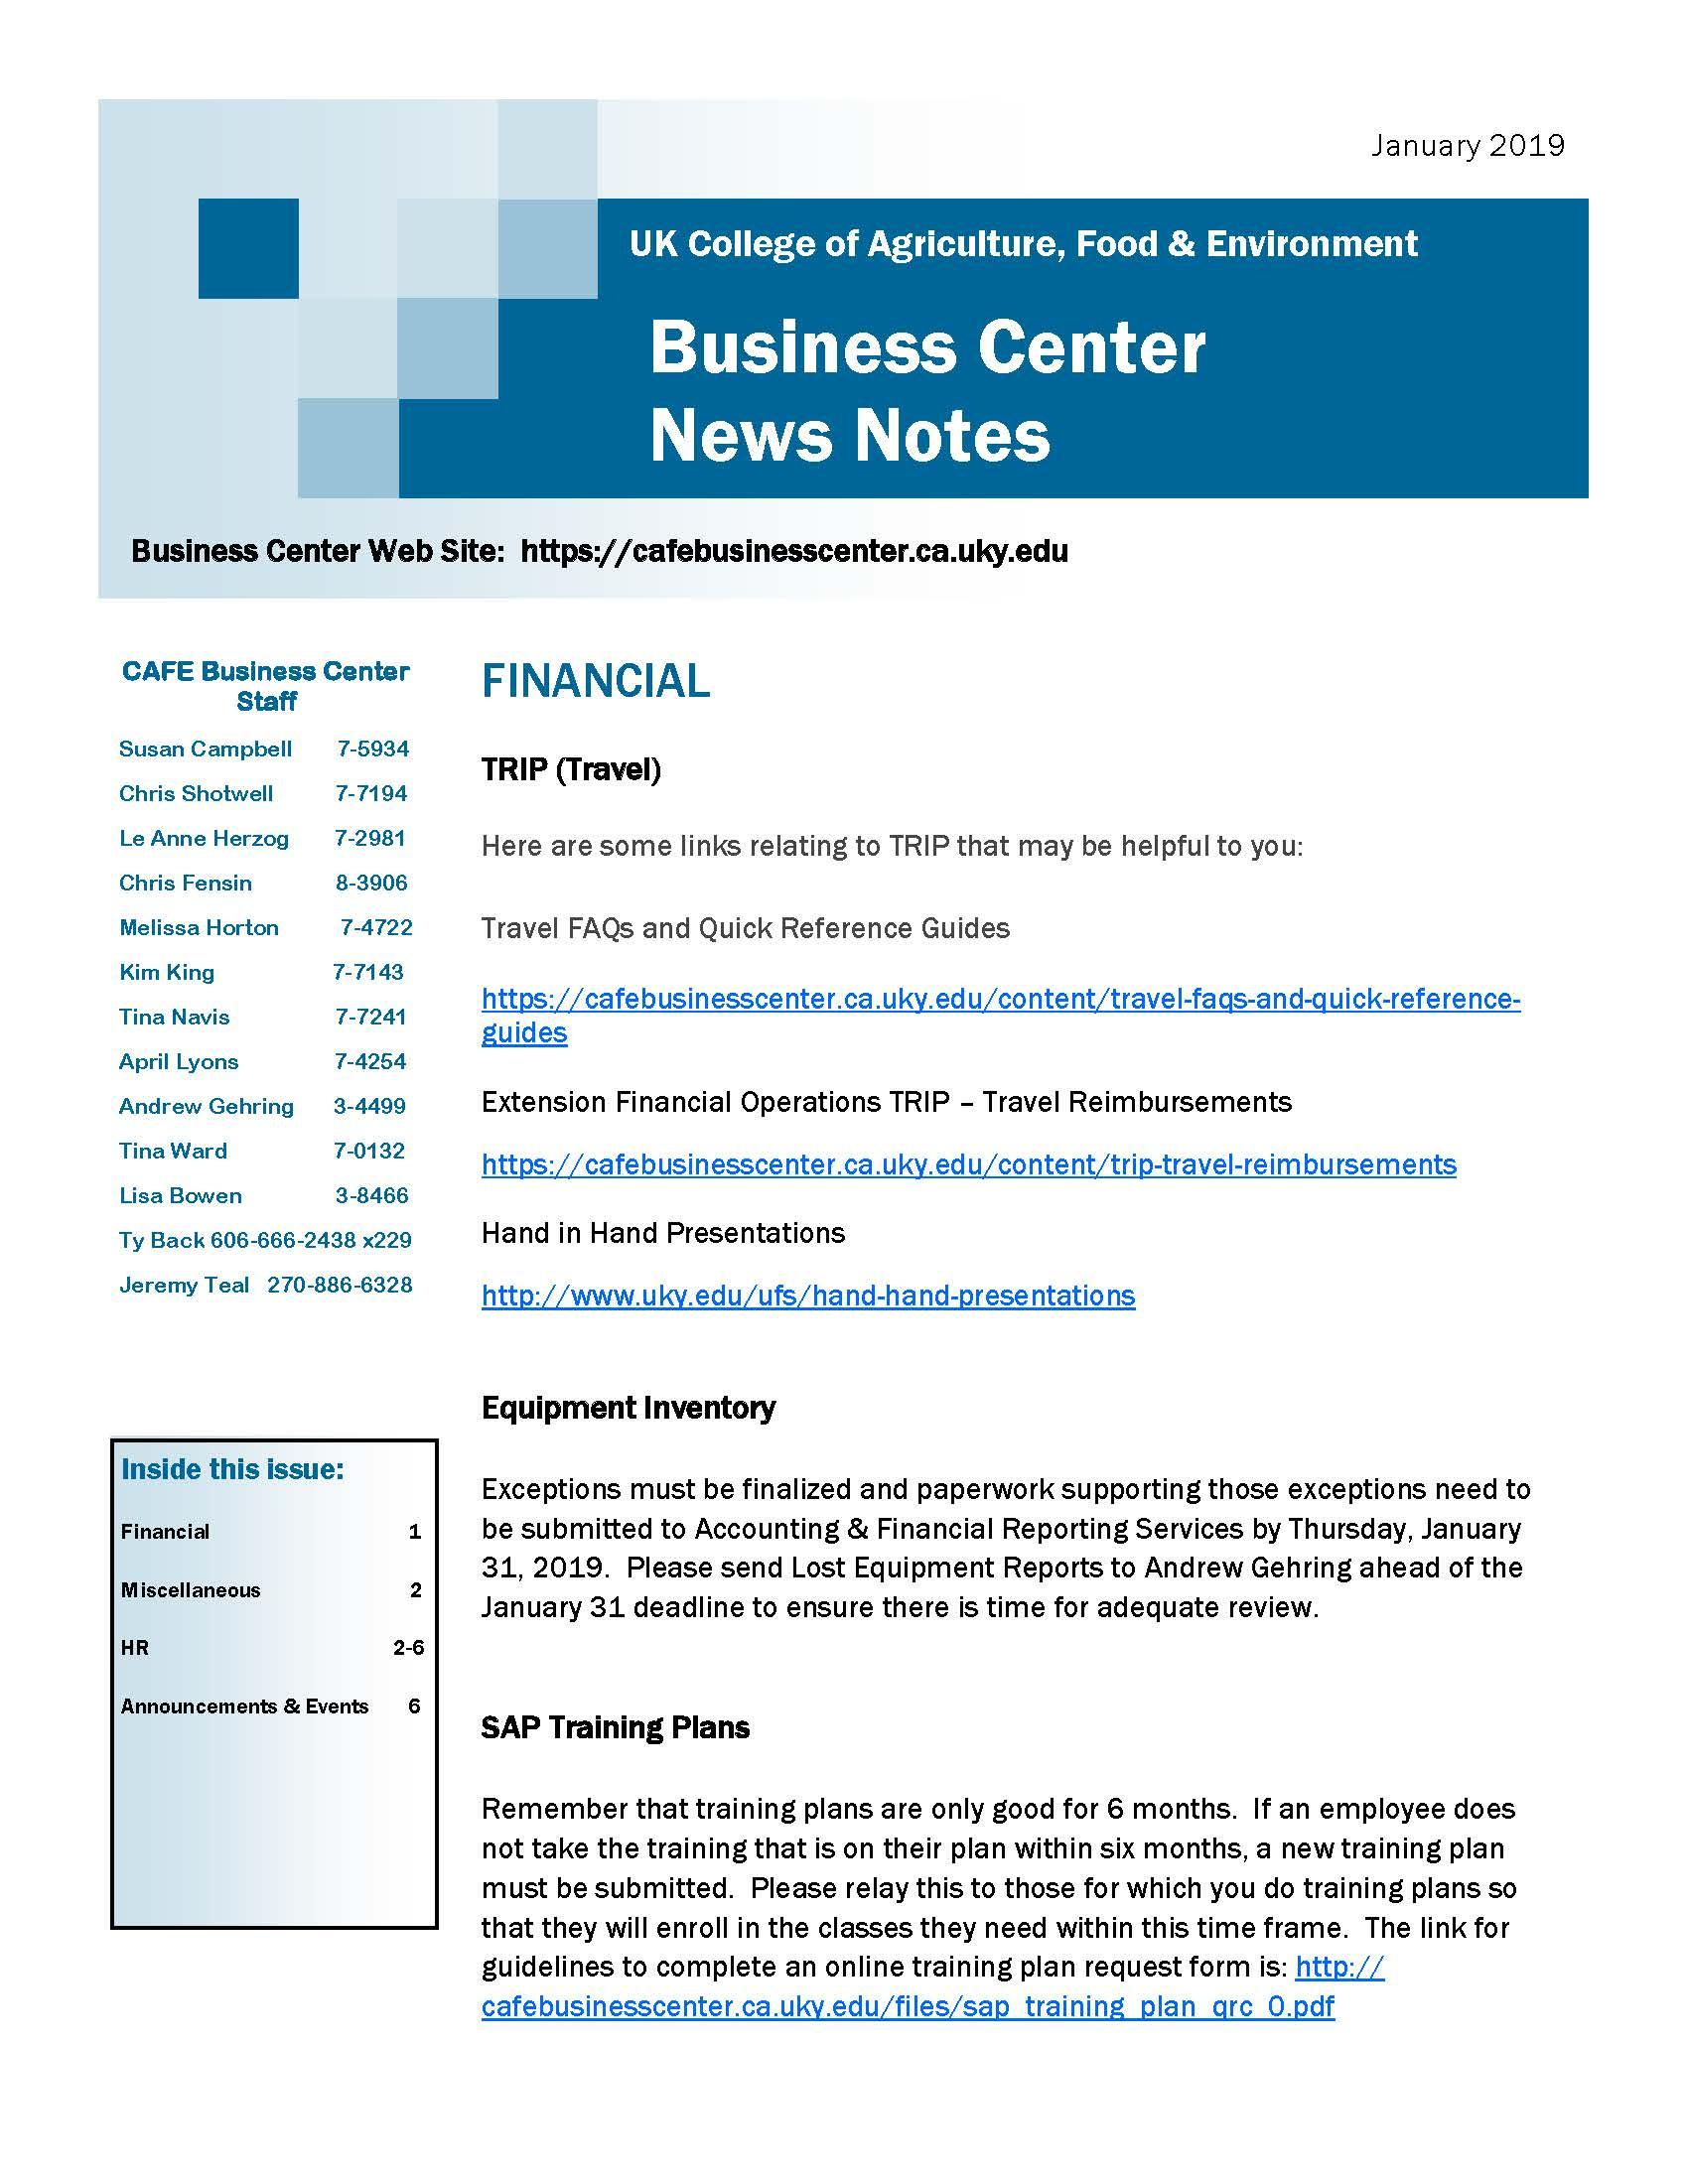 CAFE Business Center News Notes - January 2019